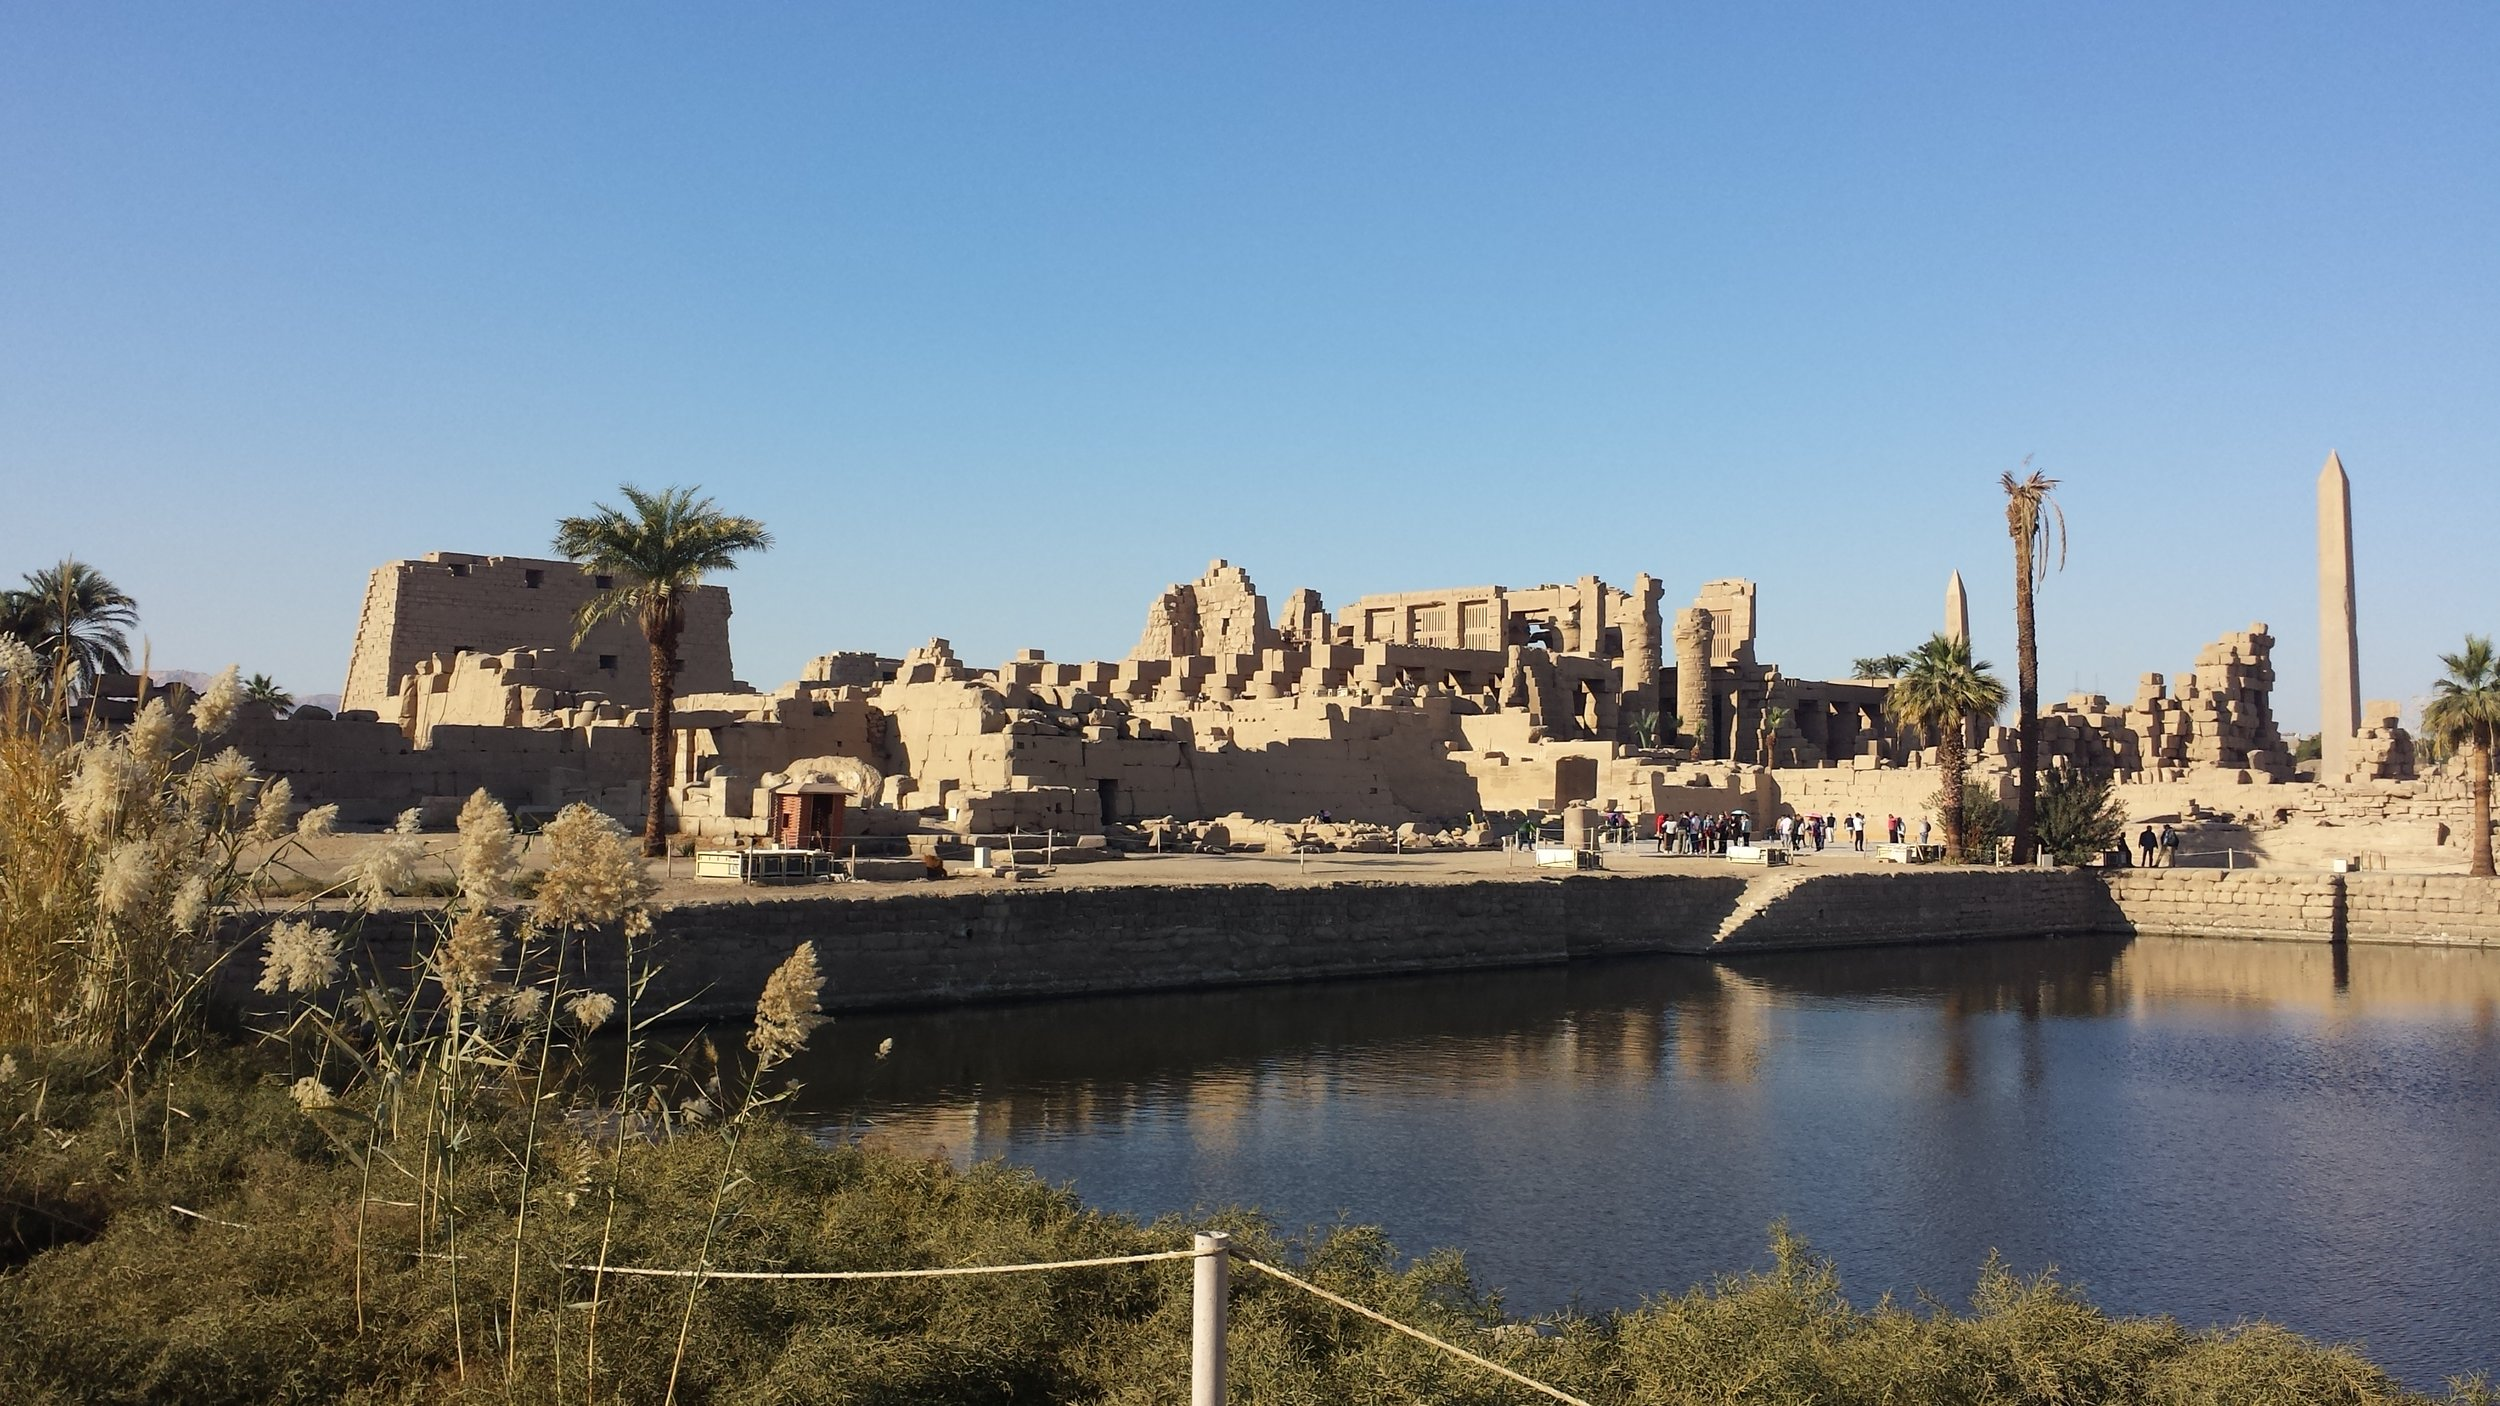 A look at Karnak from the pool on its back side.